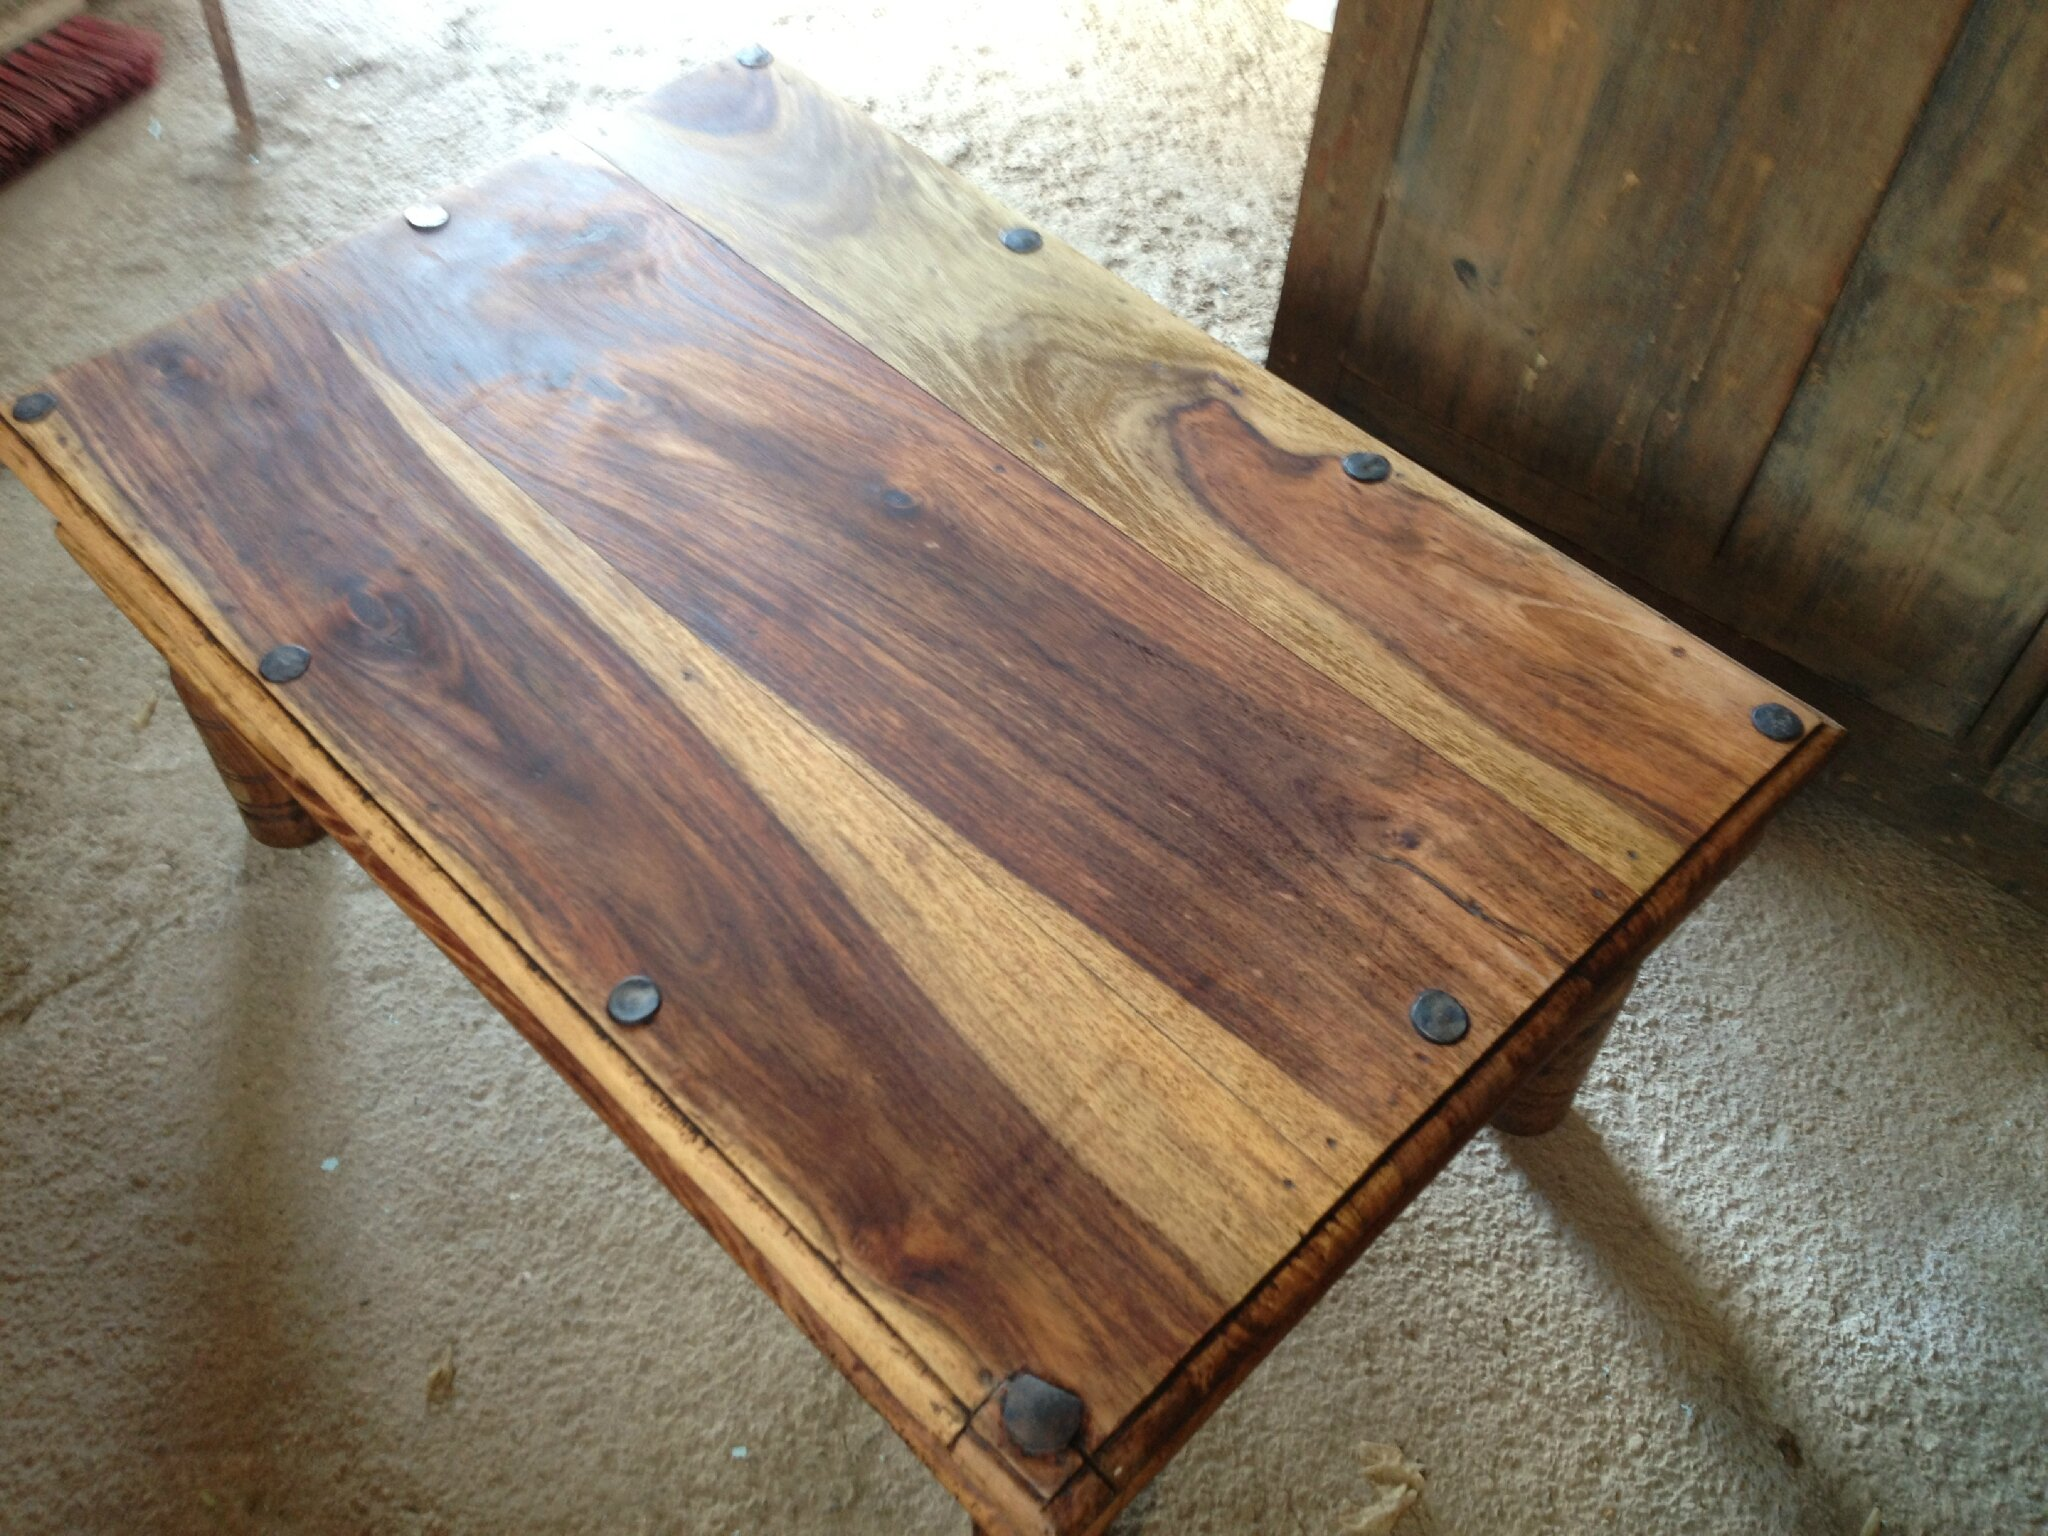 Renover une table basse en bois - Customiser une table basse en bois ...